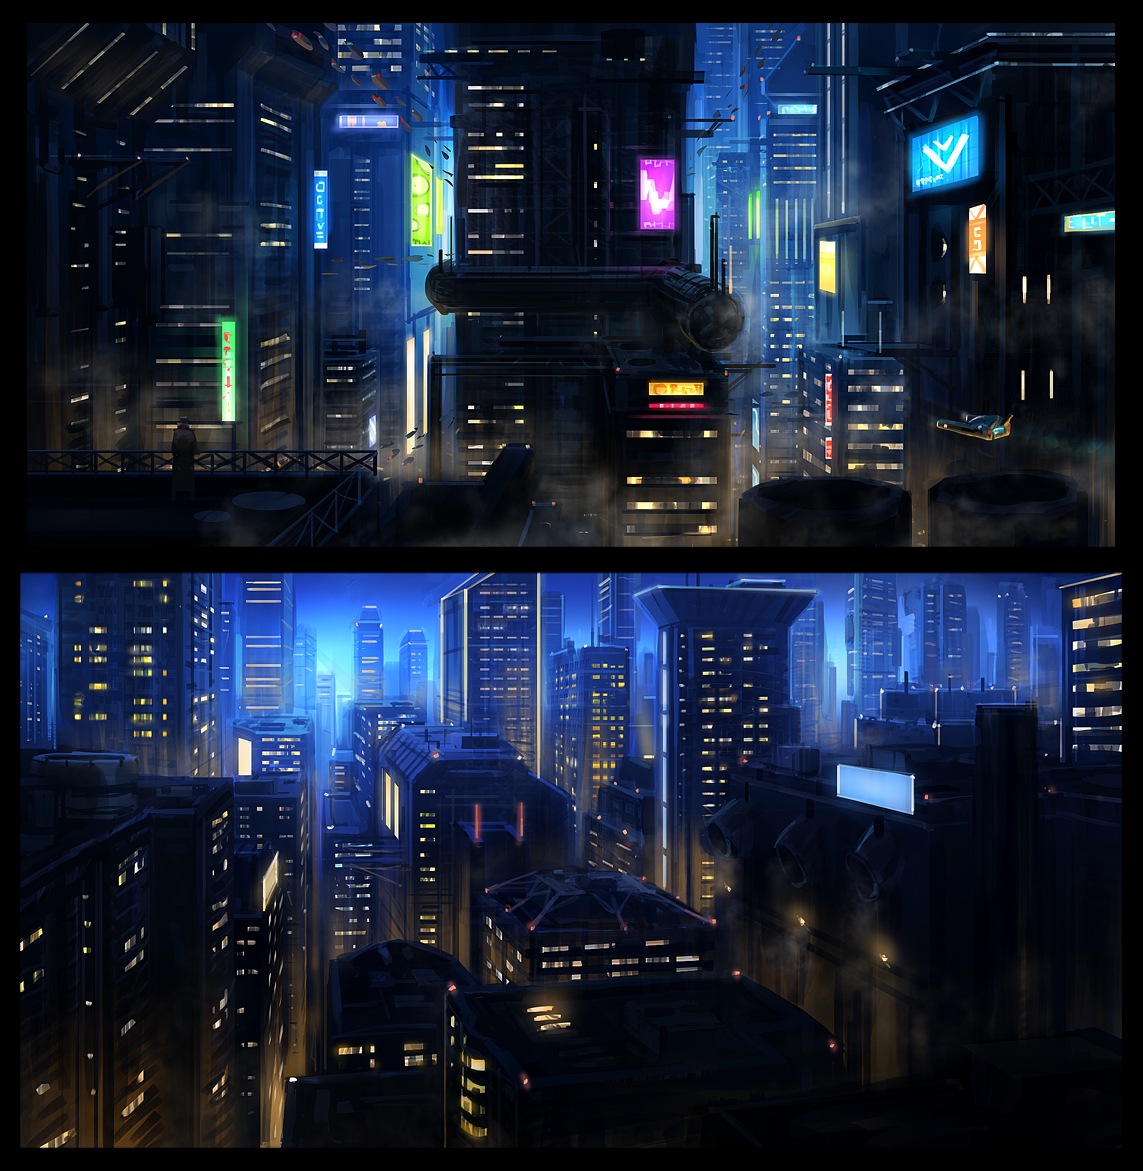 Futuristic city by JoakimOlofsson